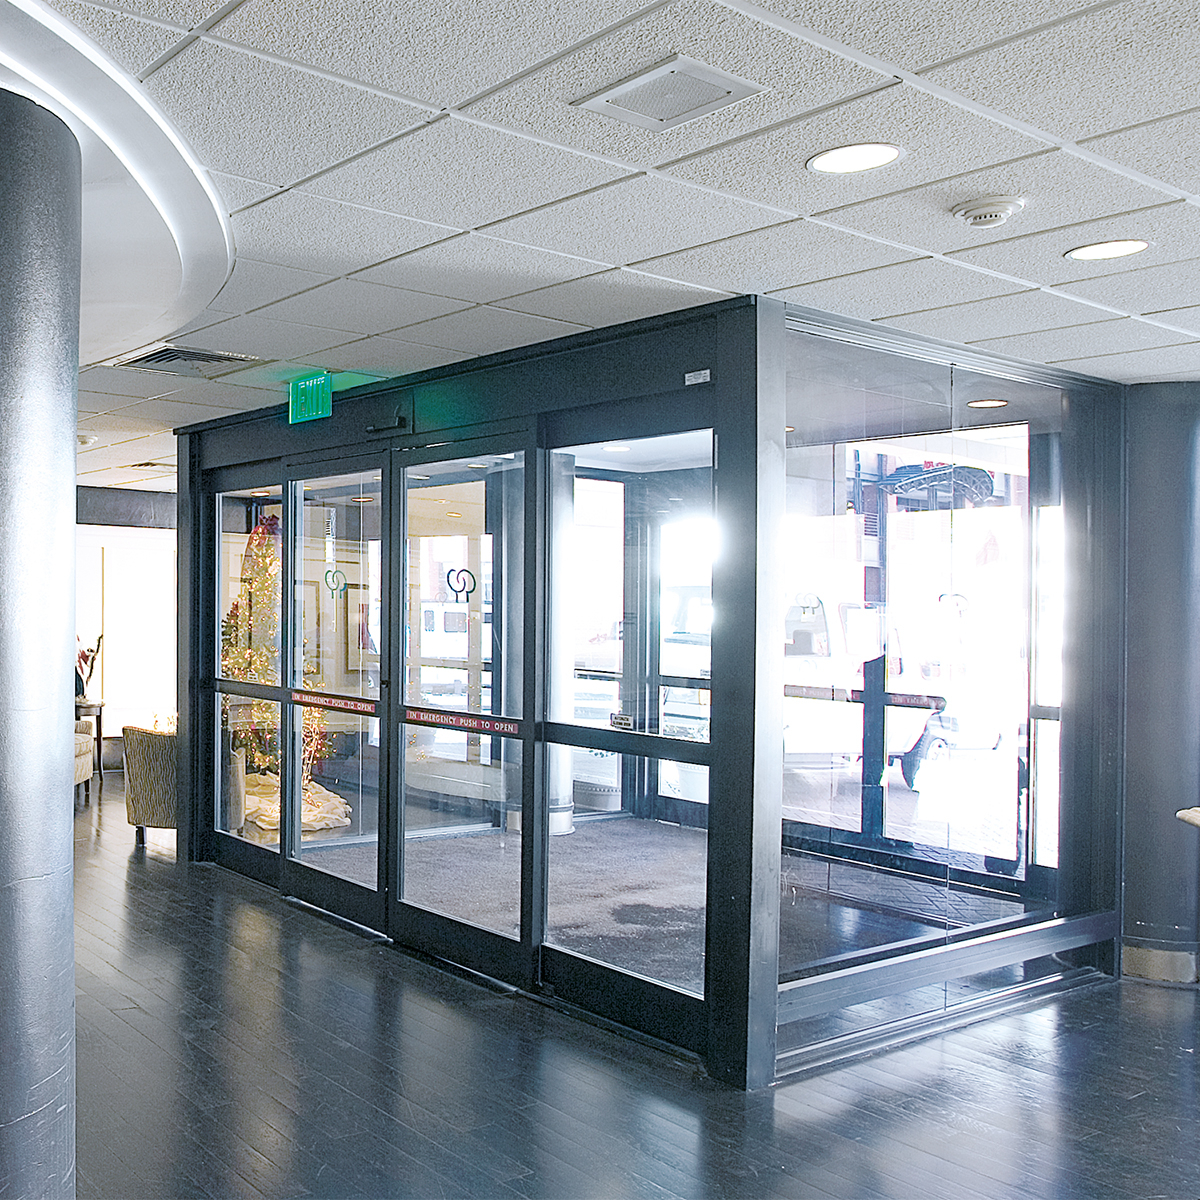 Automatic interior pocket doors are good for commercial usage